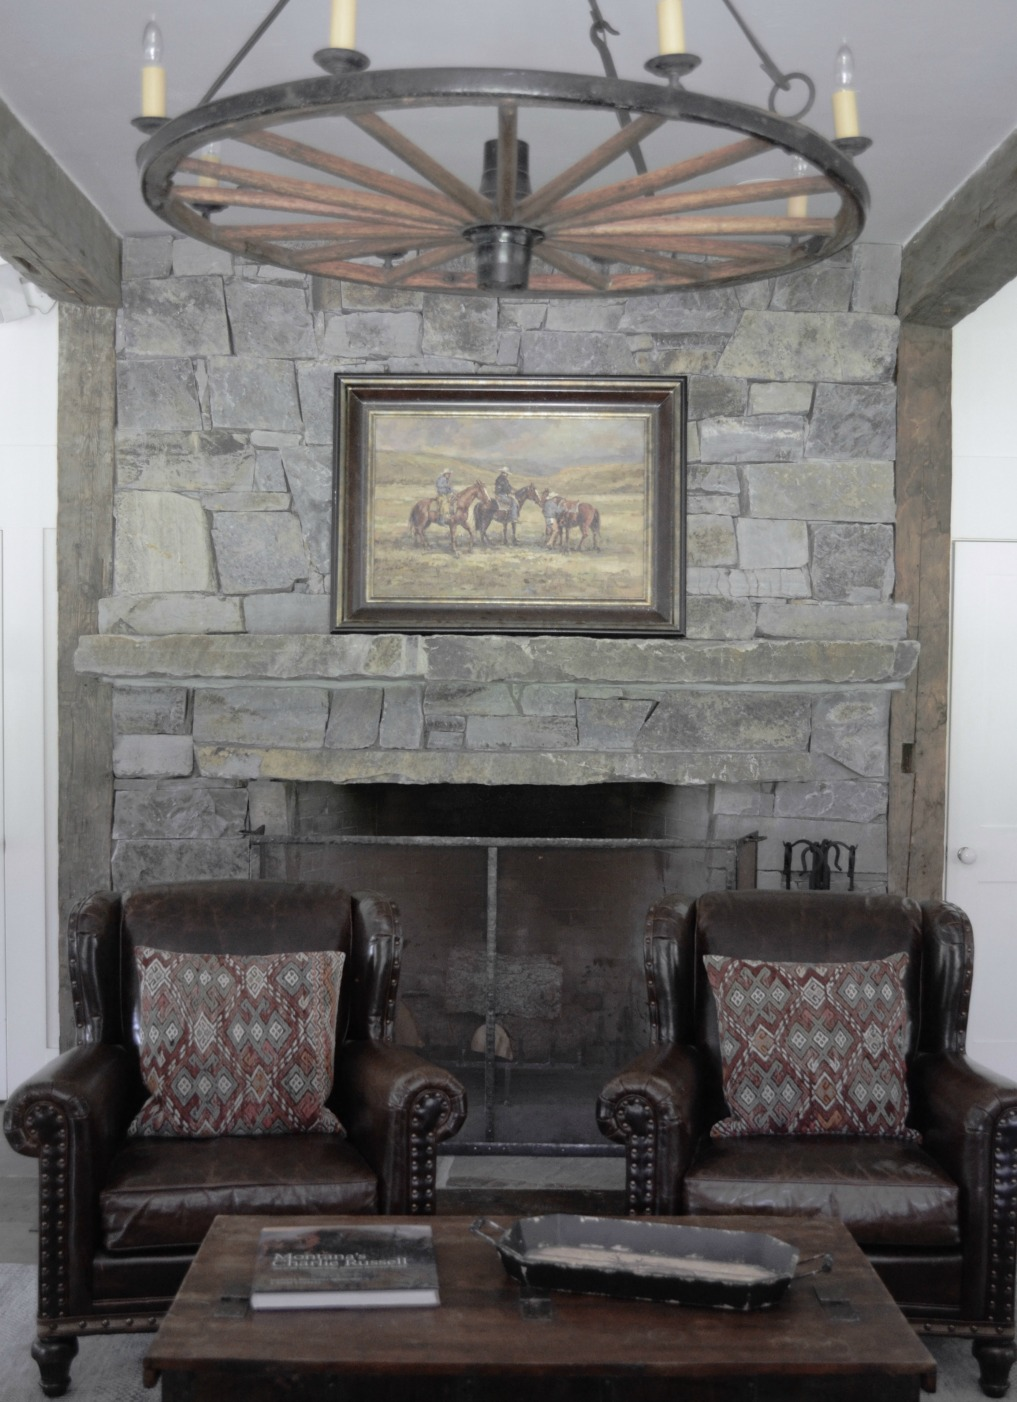 Eclectic Home Tour of Sanctuary Home - welcome to Crow Hollow Ranch. This 500 acre property is complete with farmhouse, guest house and rustic cabin kellyelko.com #hometour #kitchen #rusticdecor #barnwood #whitekitchen #homedecor #fireplace #mantel